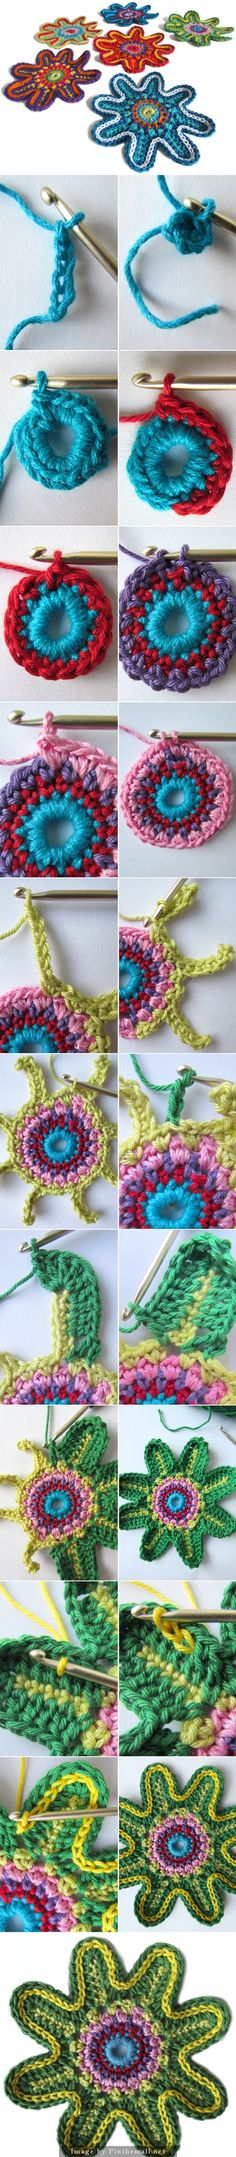 "#Crochet #Tutorial for these wonderful flower motifs from a Dutch blog that has a translation. #KnittingGuru http://www.pinterest.com/KnittingGuru Go to handwerkjuffie.blogspot.nl  to get the exact directions."" ~~"